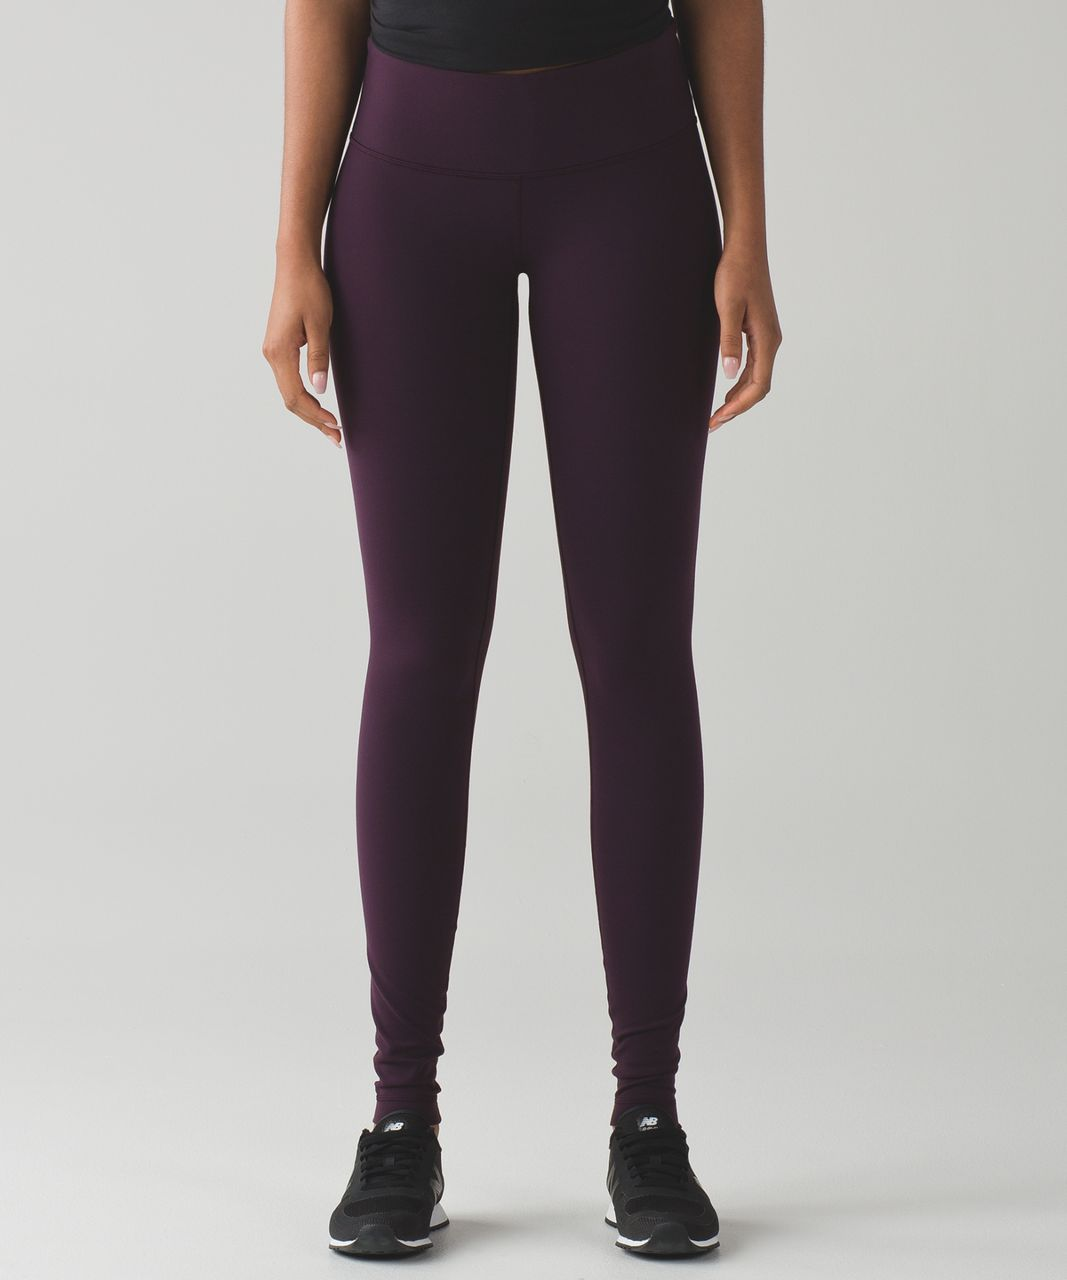 Lululemon Wunder Under Pant III (Full-On Luon) - Black Cherry